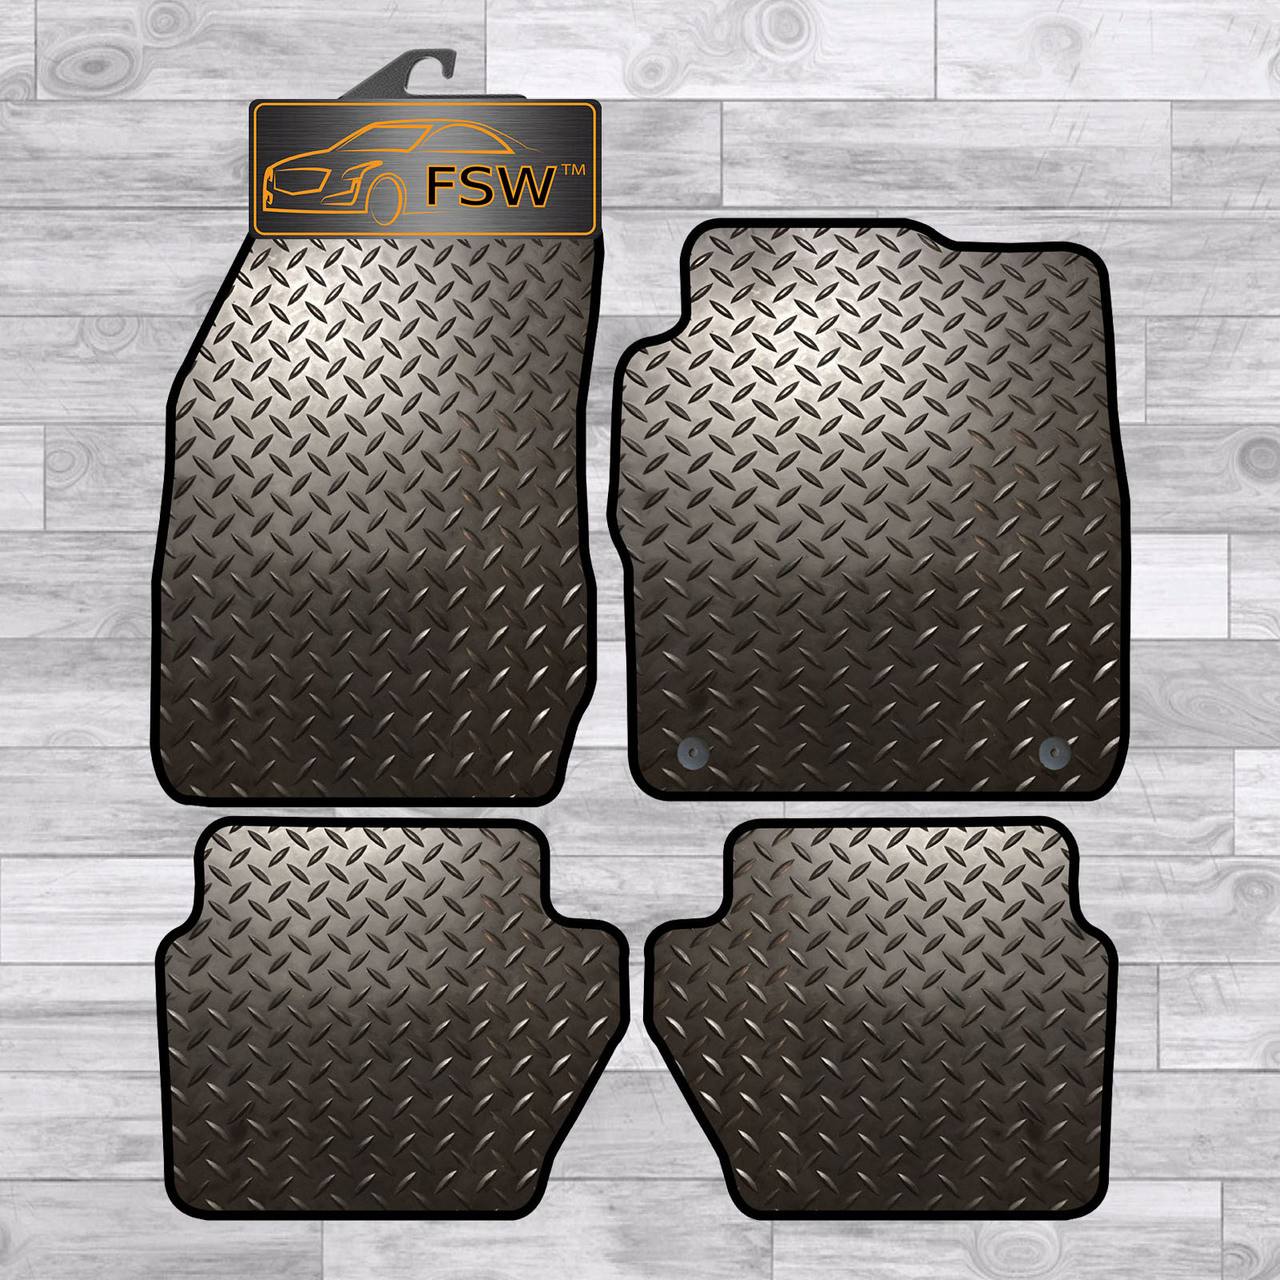 Rubber Ford Fiesta Tailored Car Mats From 2009-2011 Black